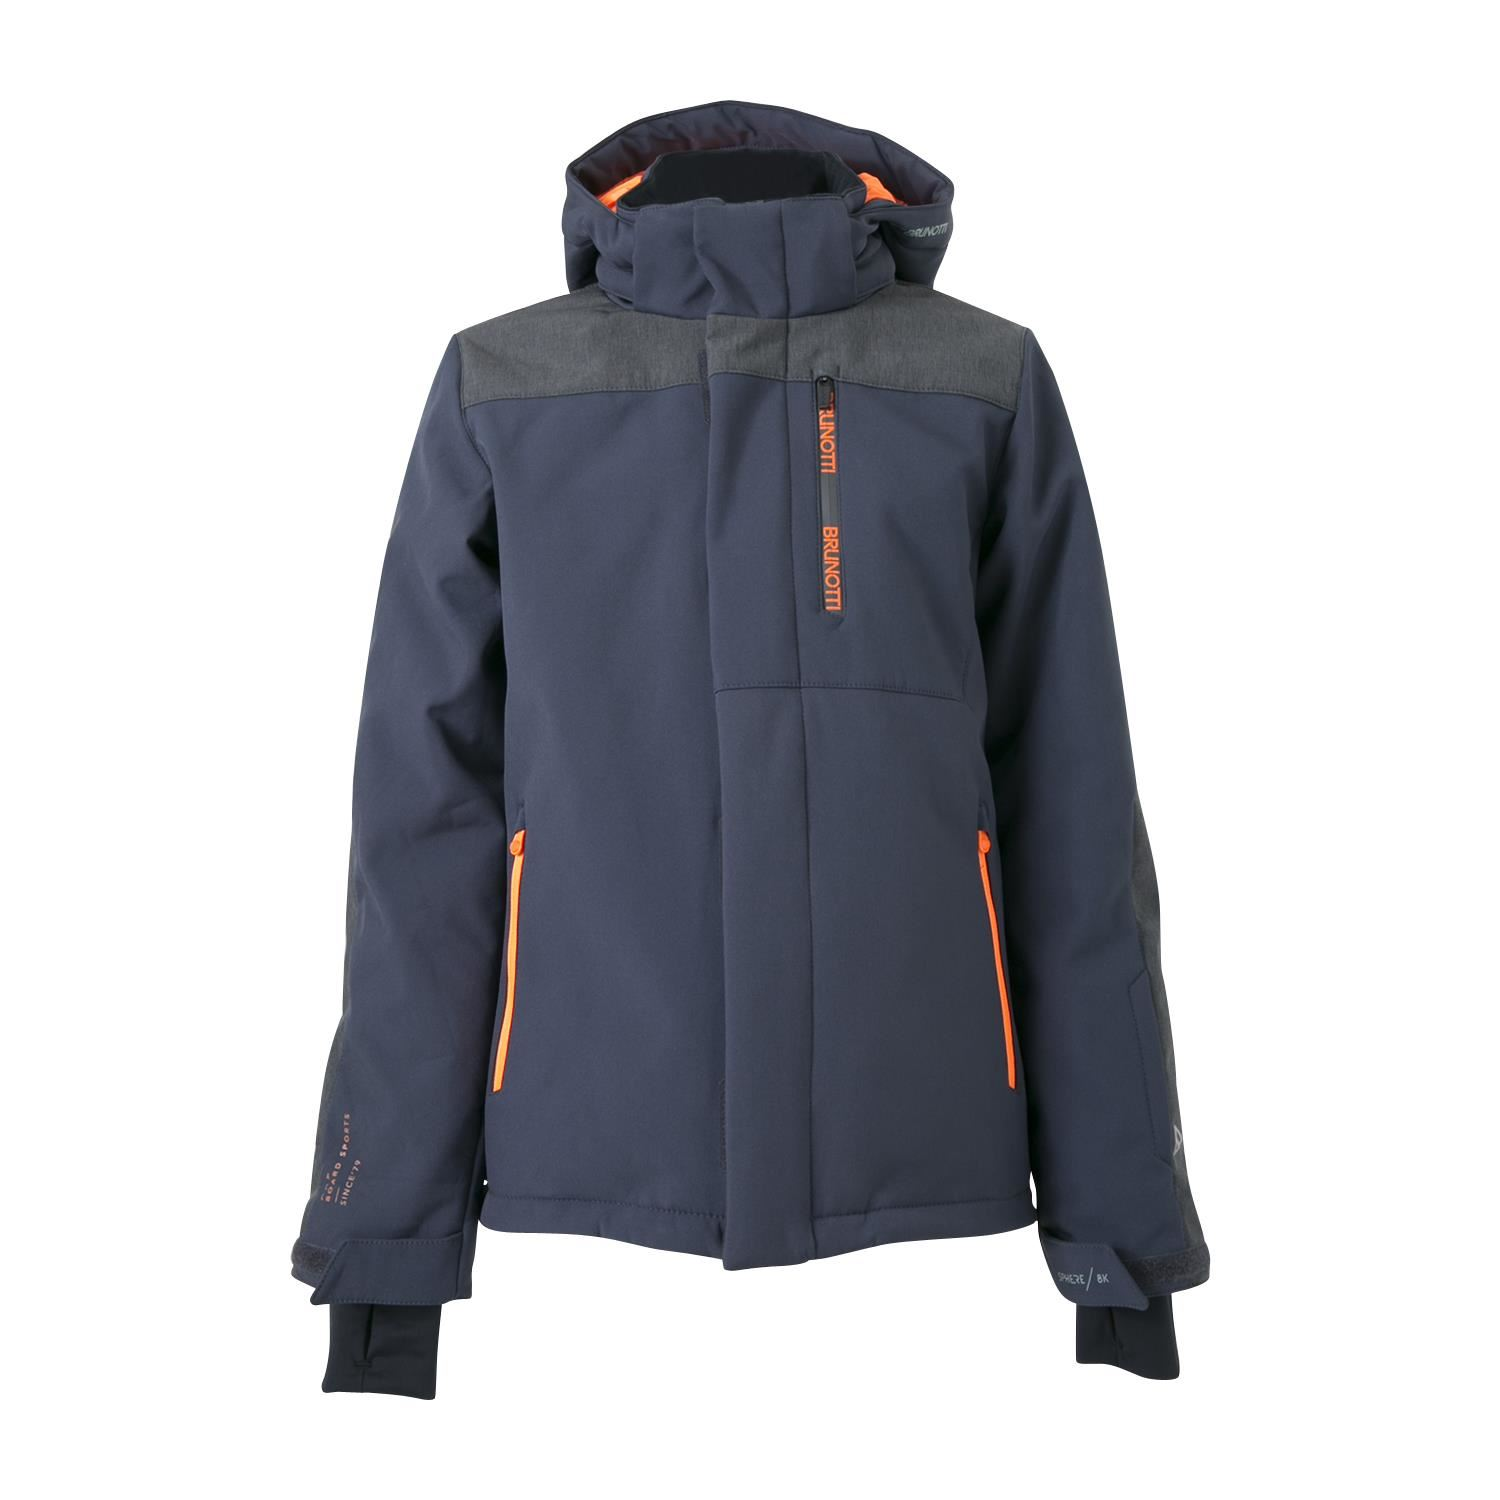 Brunotti Twintip JR W1819 Boys Softshell Jacket